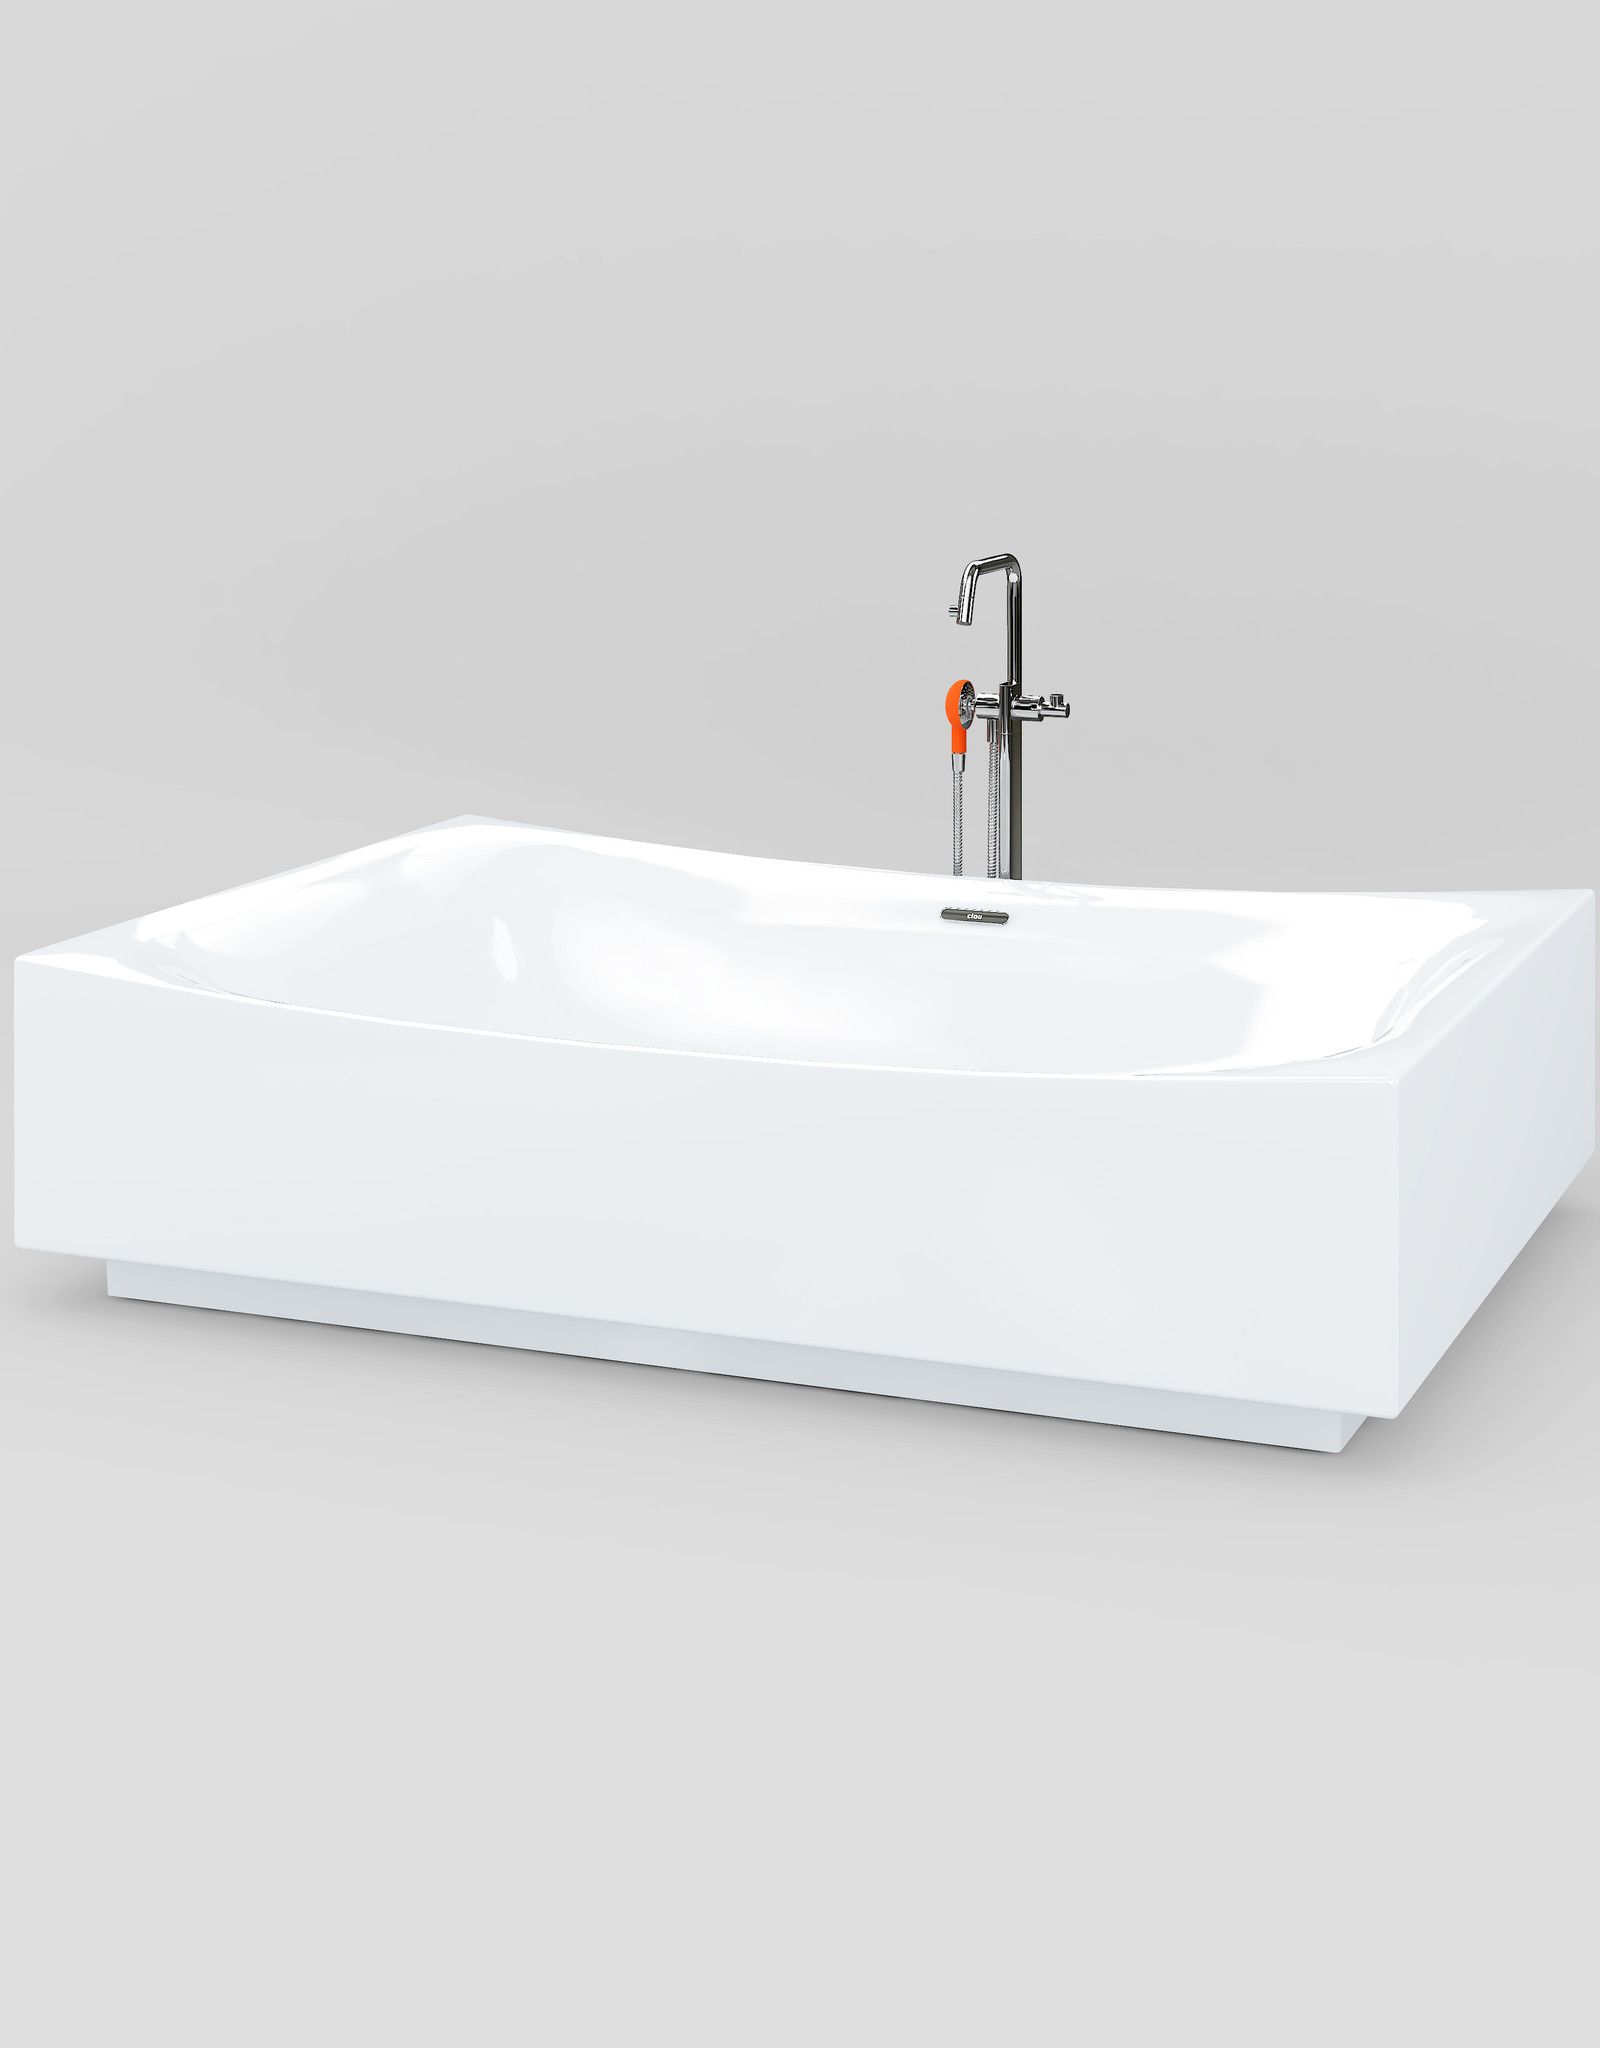 Hammock freestanding 2-person bathtub- outlet/product used at a fair